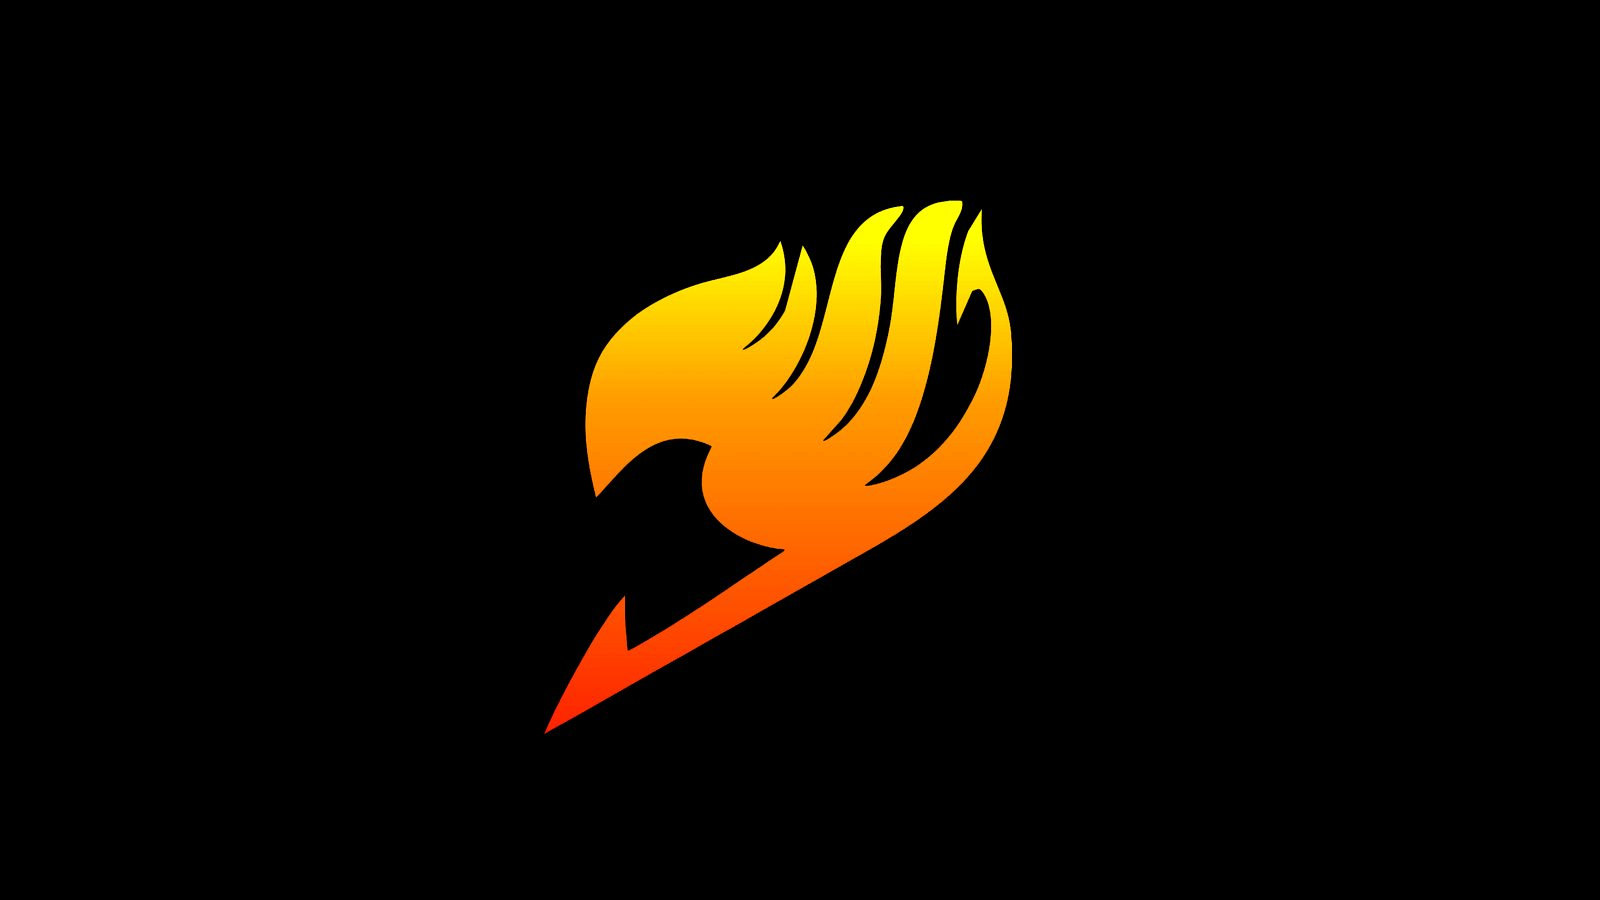 Fairy Tail Yellow Logo Hd Wallpaper Iphone 1600x900